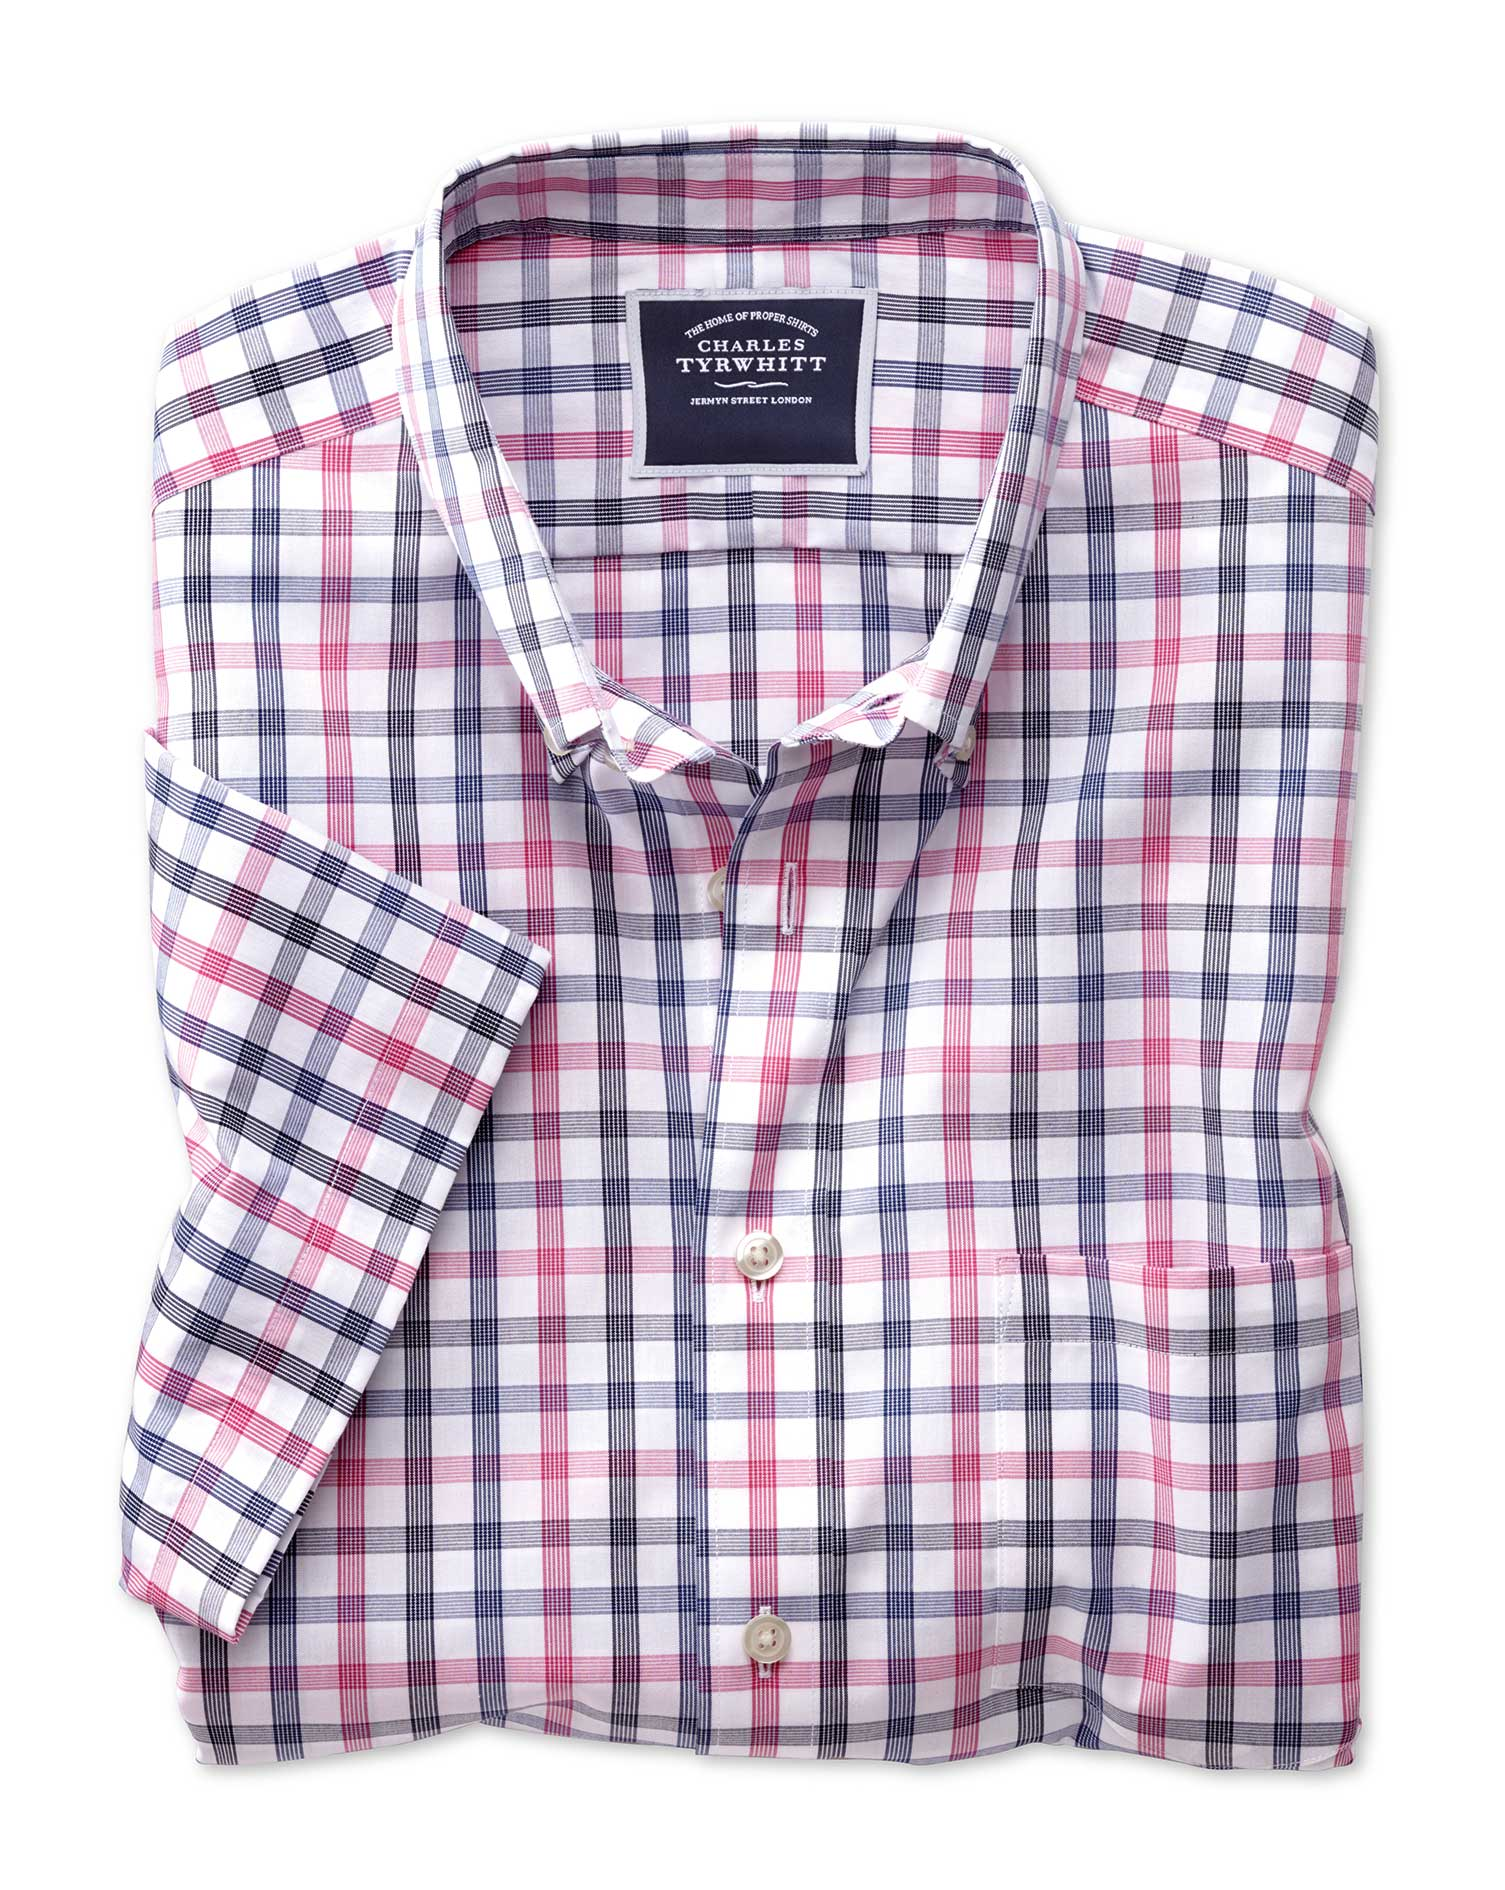 classic fit non-iron pink large check short sleeve cotton casual shirt single cuff size xxxl by charles tyrwhitt